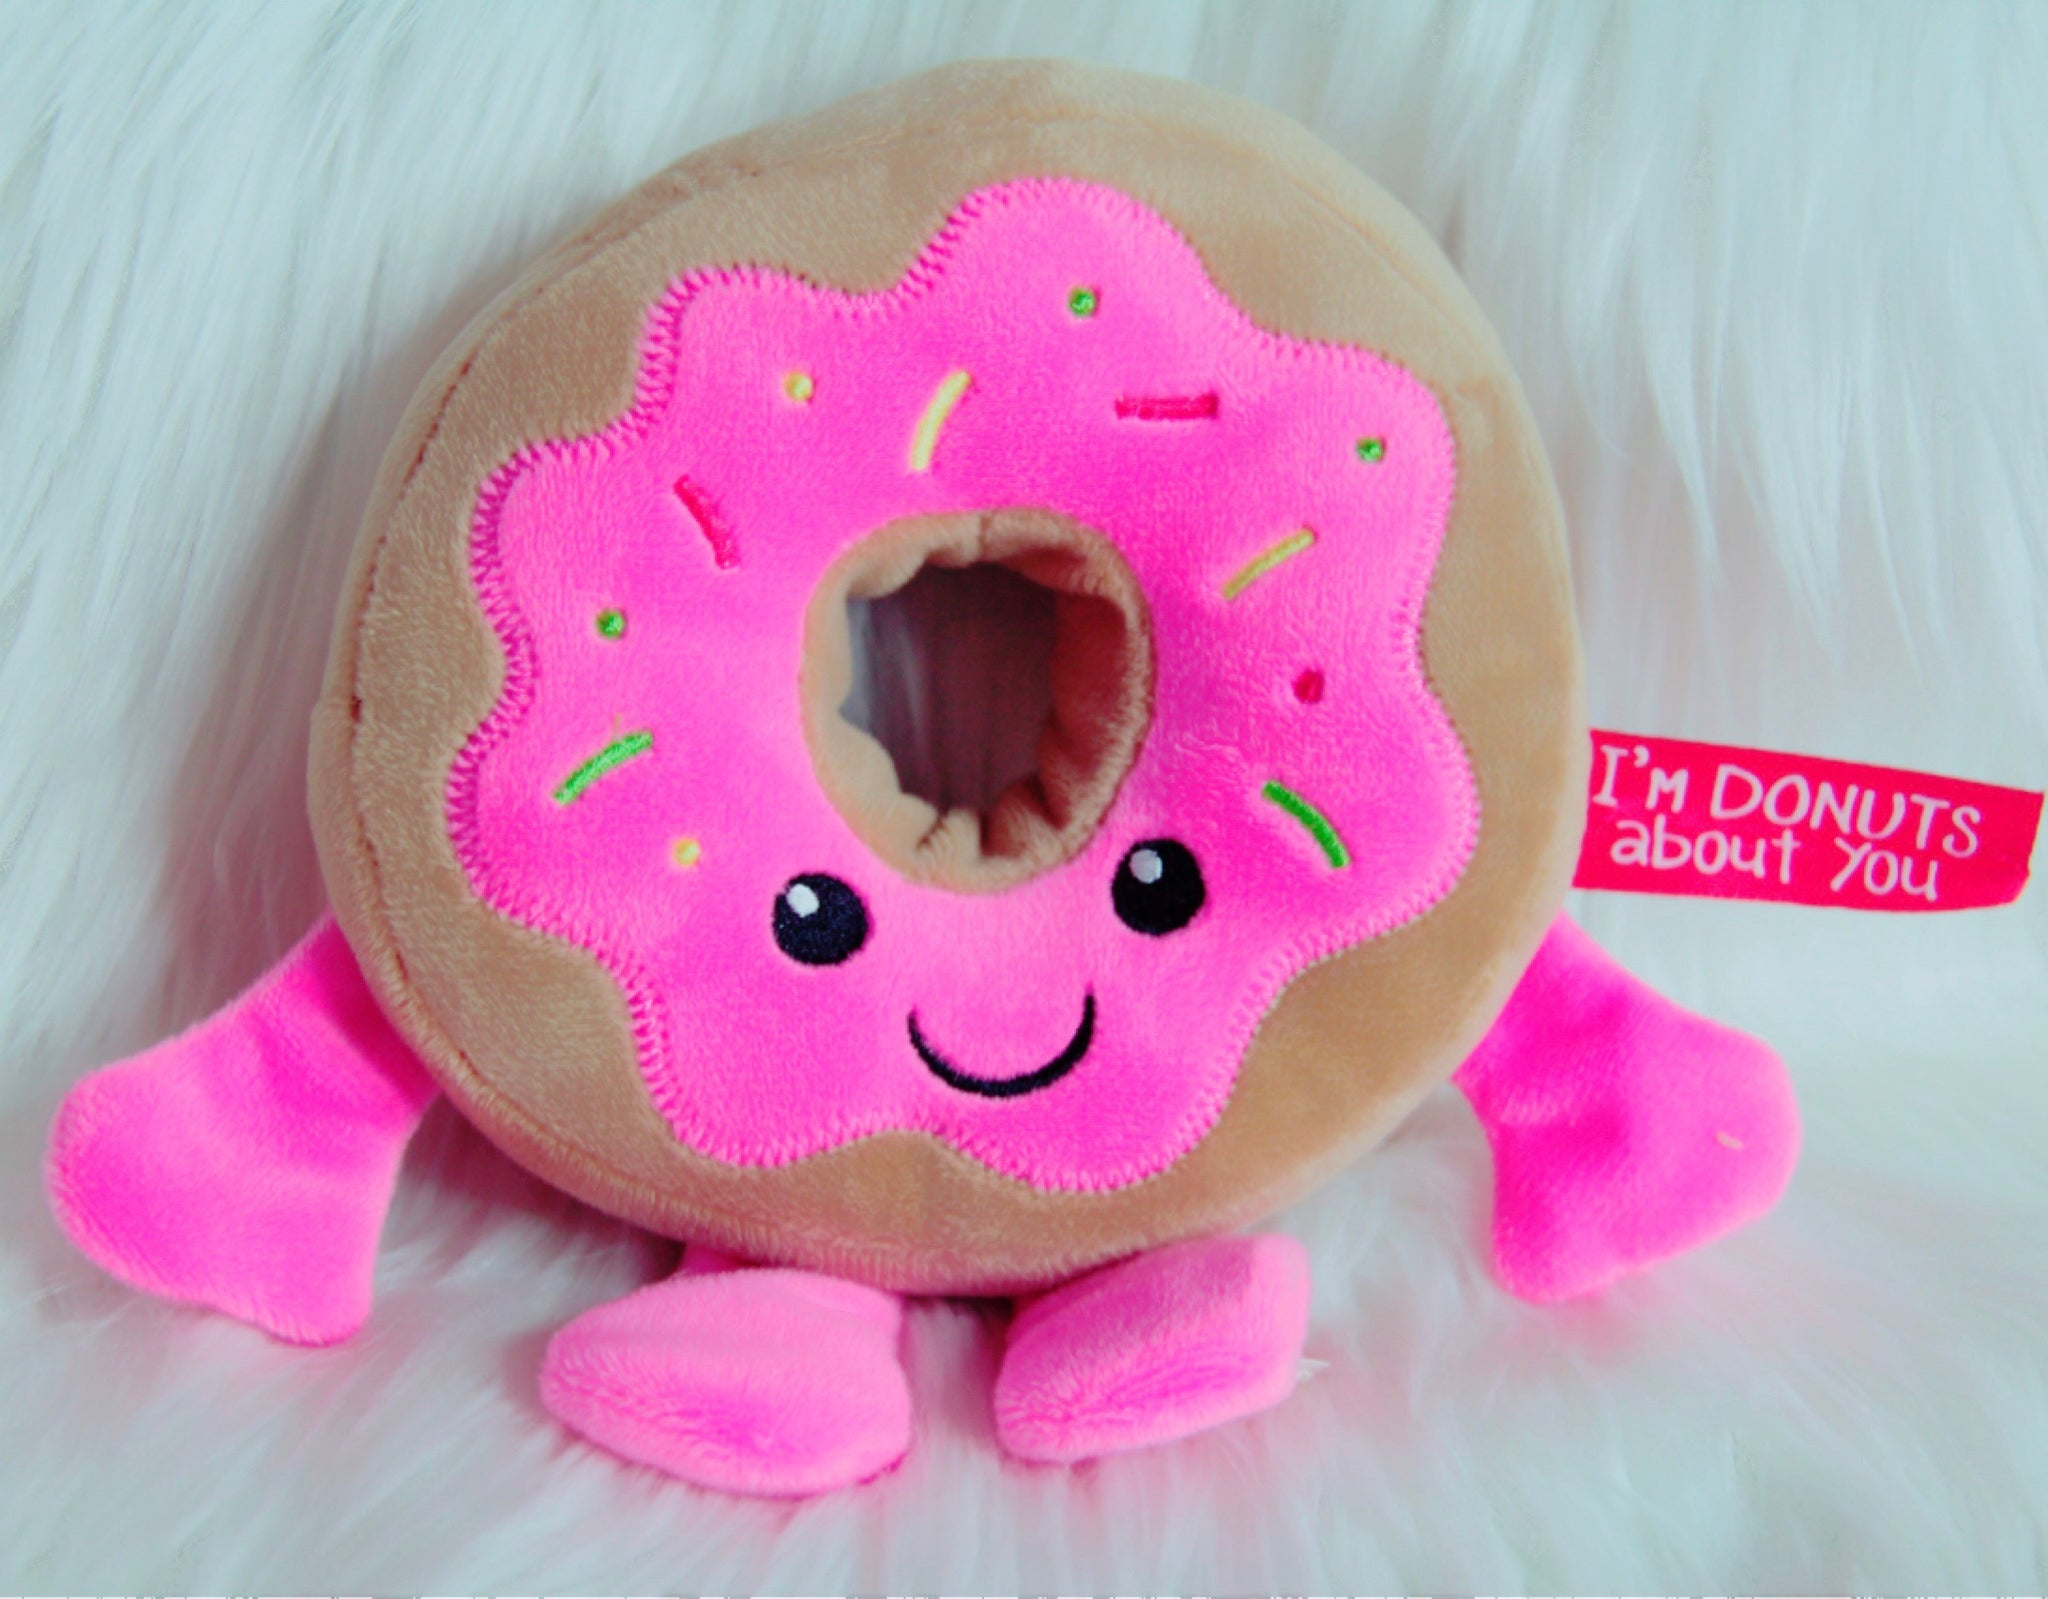 Donut plush decor